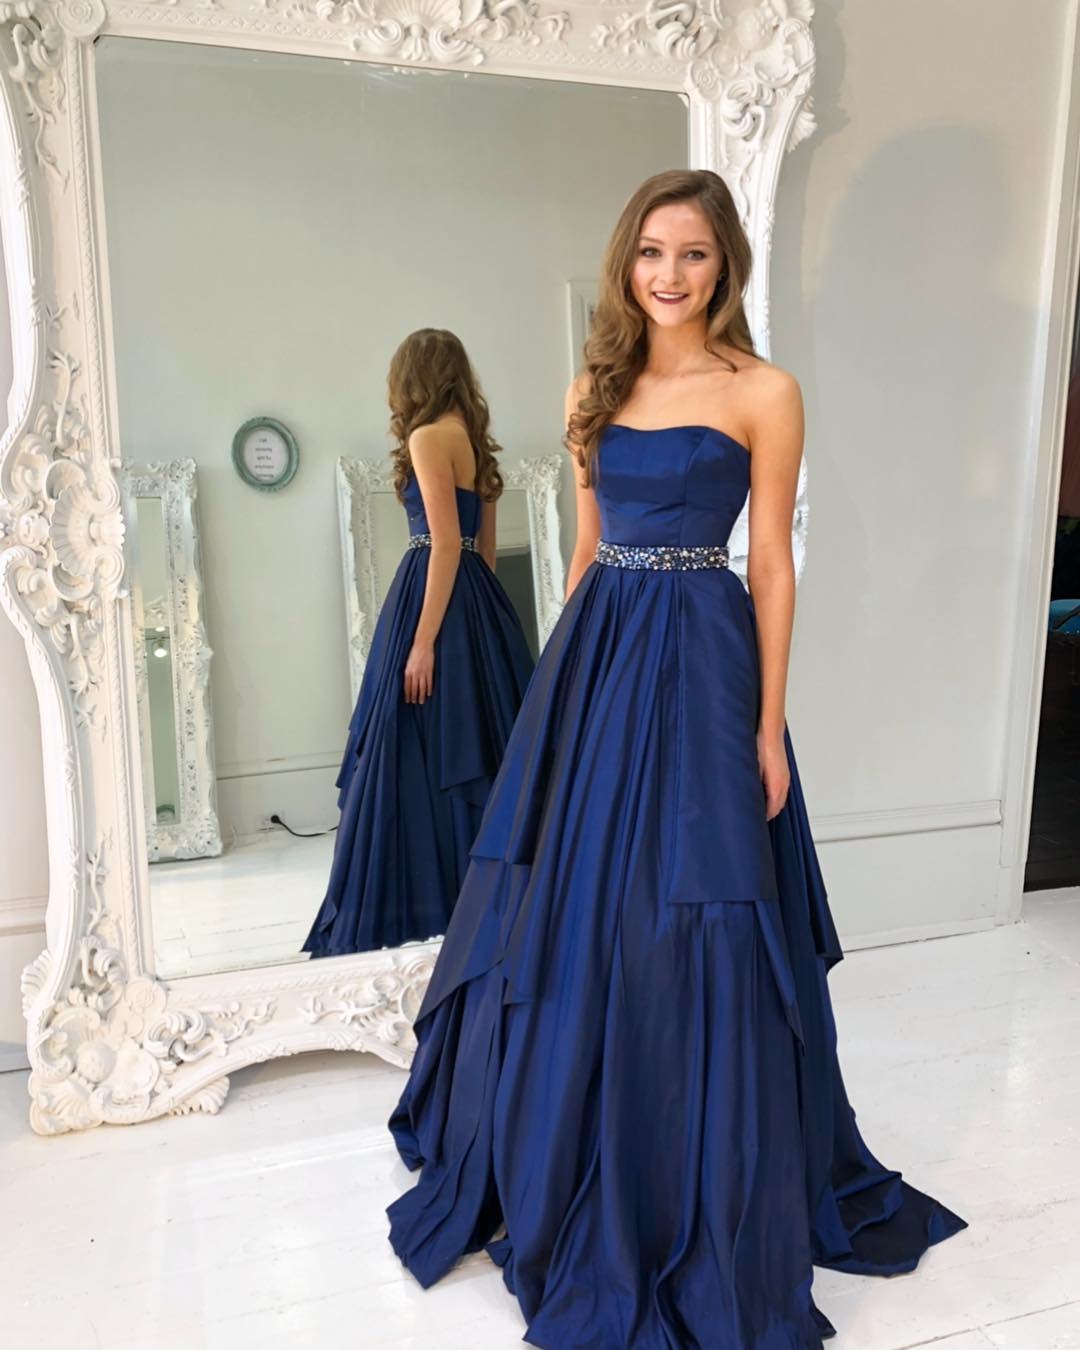 e459819cf68 Elegant Strapless Prom Dress A Line Wedding Party Dress Royal Blue Formal  Gown Long